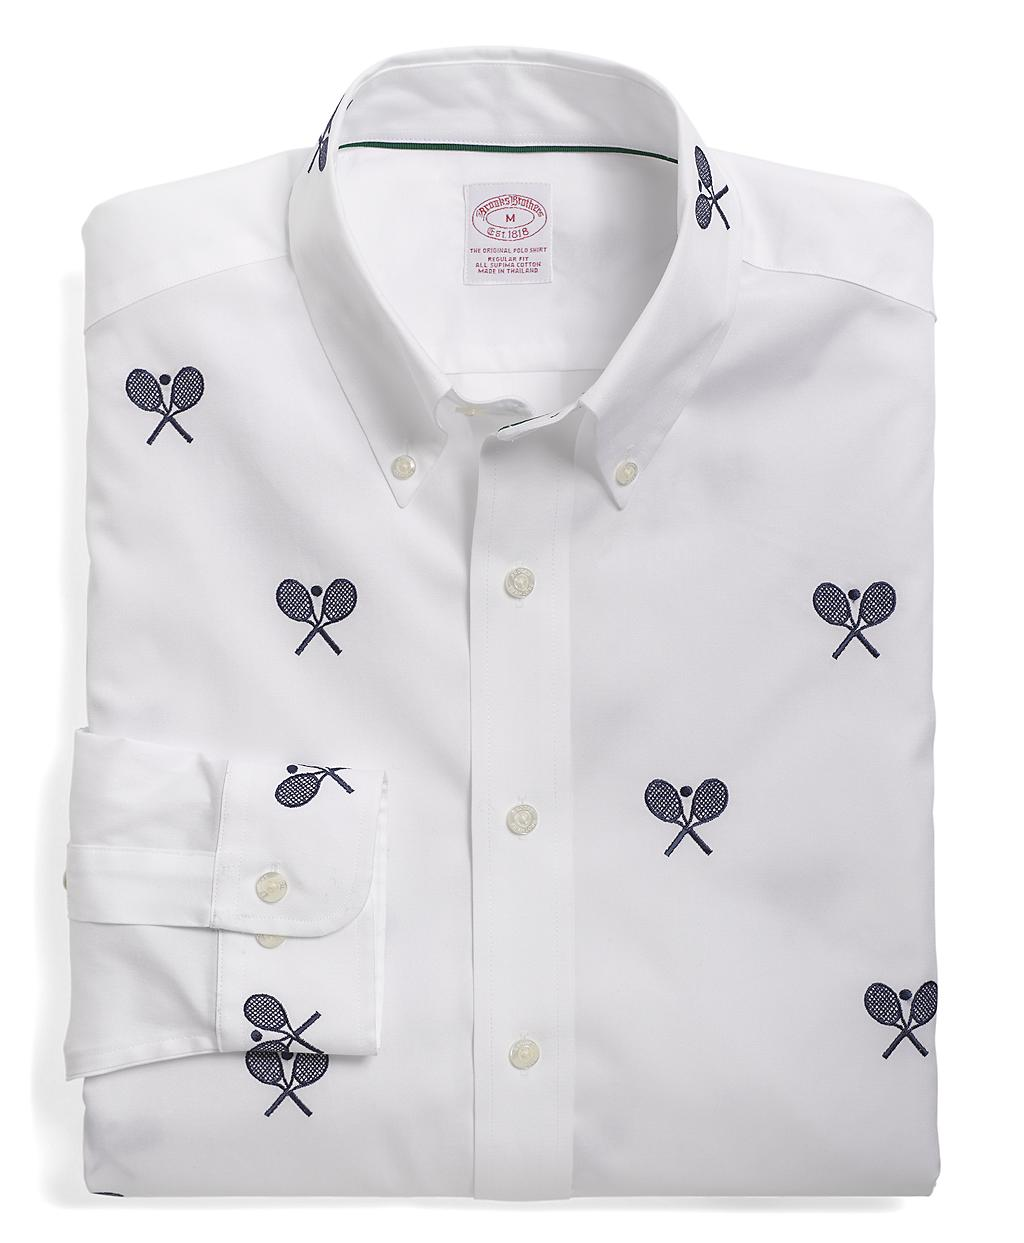 Brooks brothers regular fit tennis racquet embroidered for Brooks brothers dress shirt fit guide